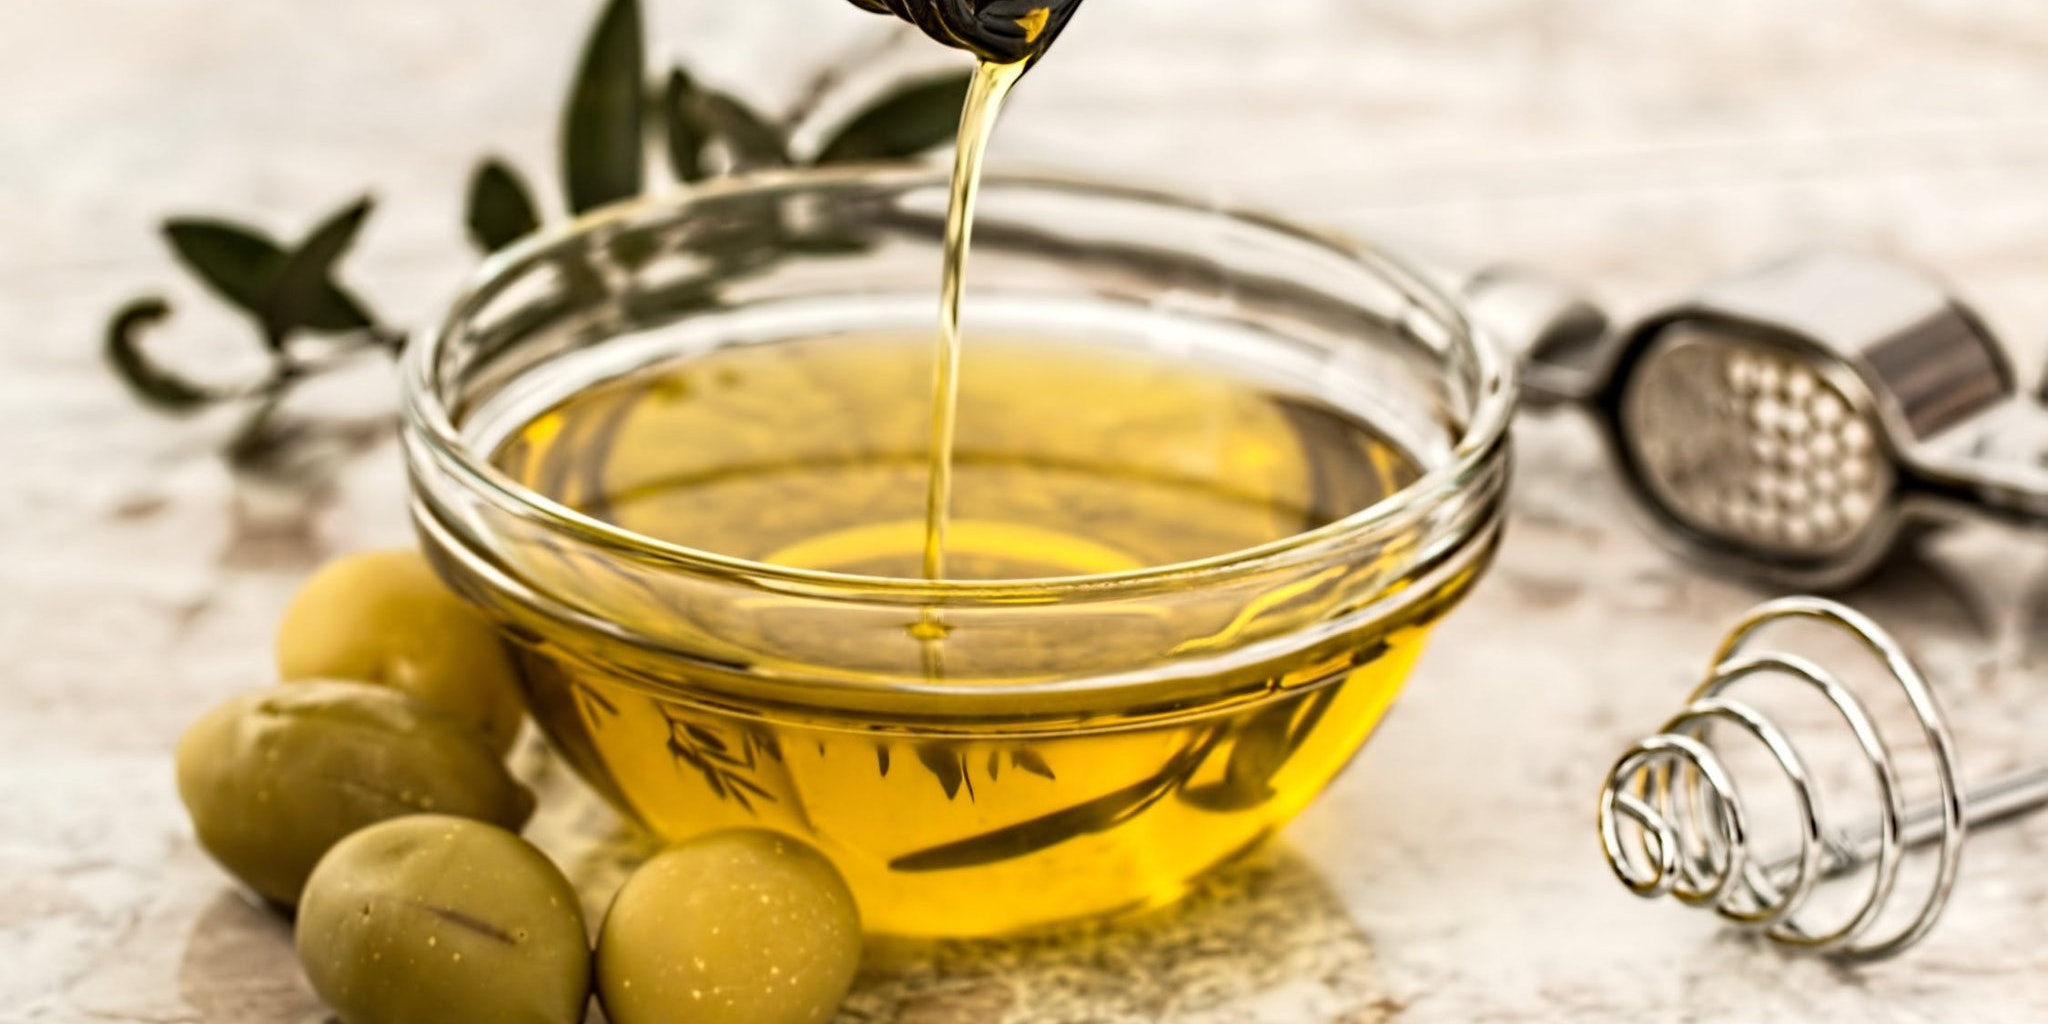 Evoo Marketplace-Olive Oils & Aged Balsamic Vinegars-Denver